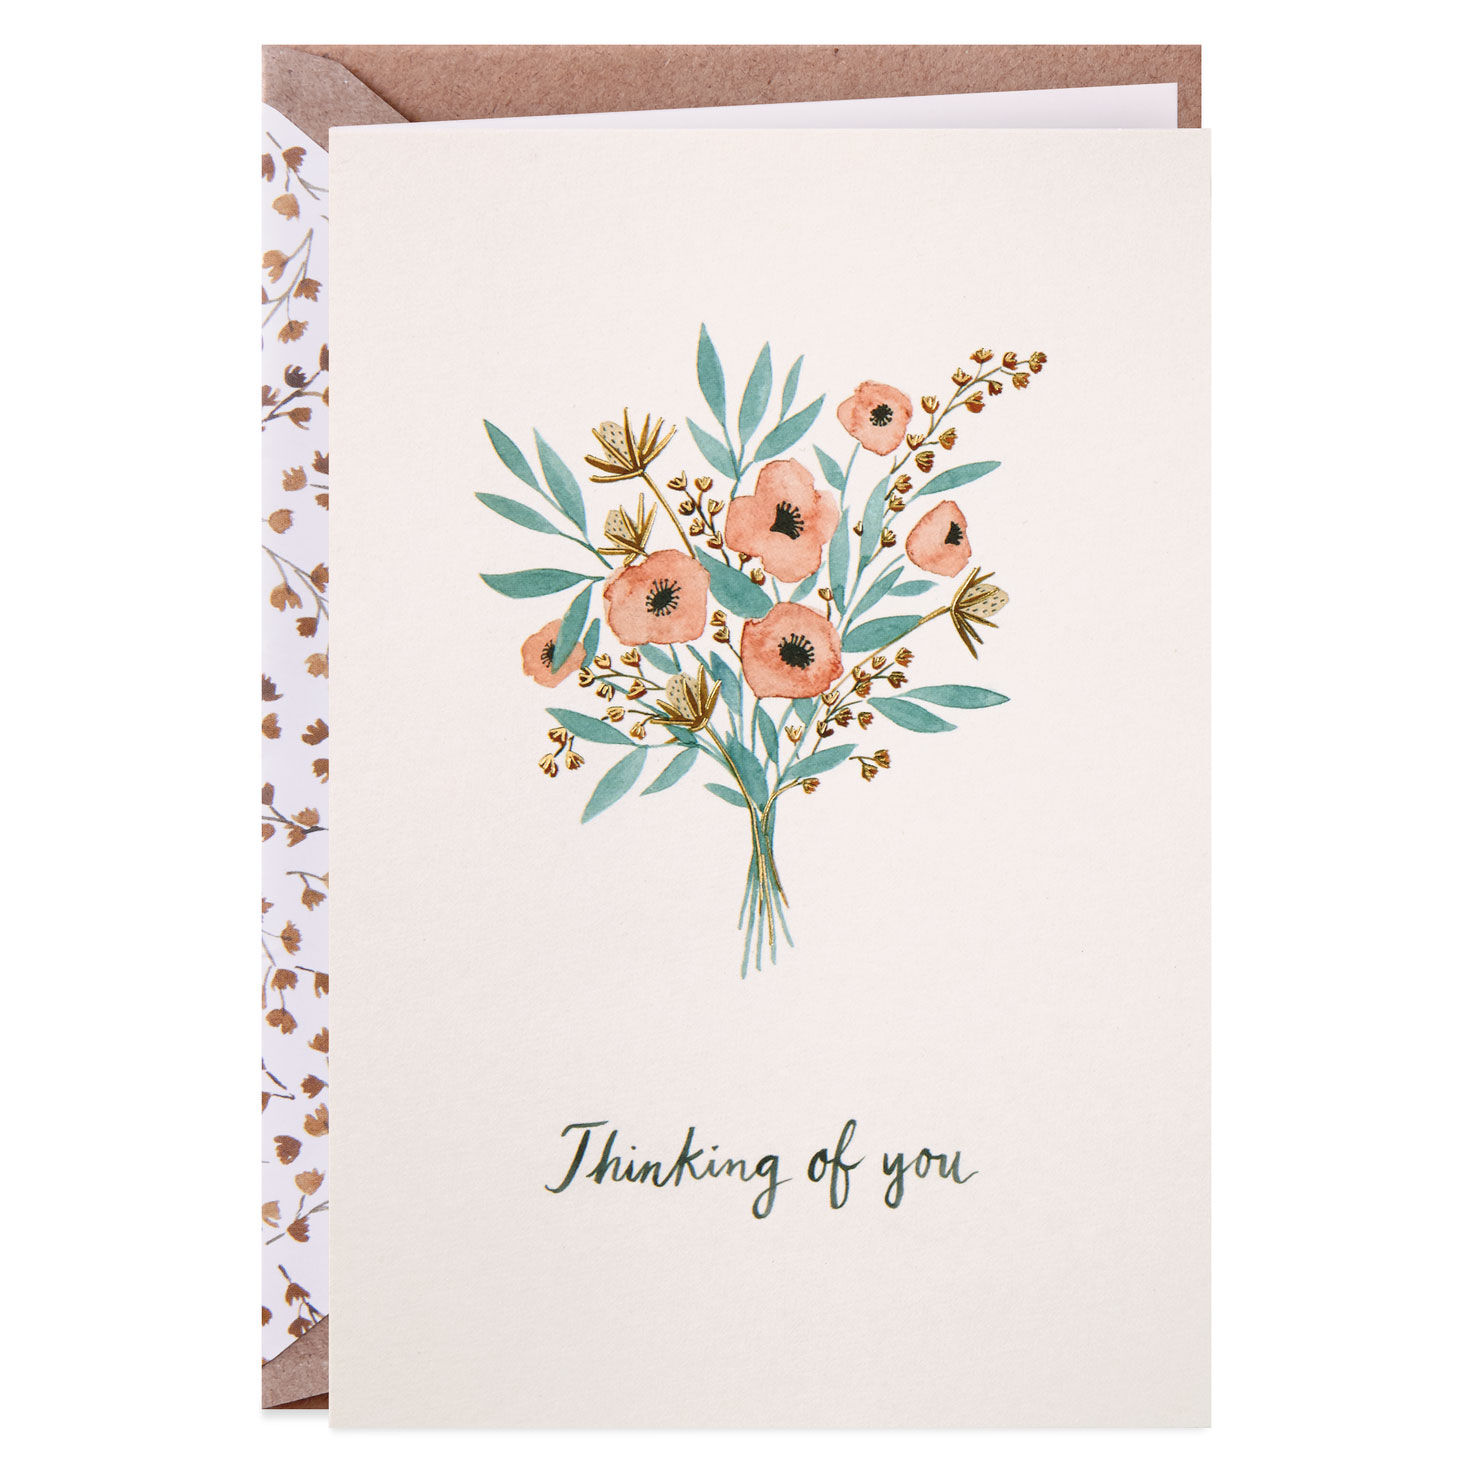 It's just a photo of Printable Thinking of You Card for coloring cards